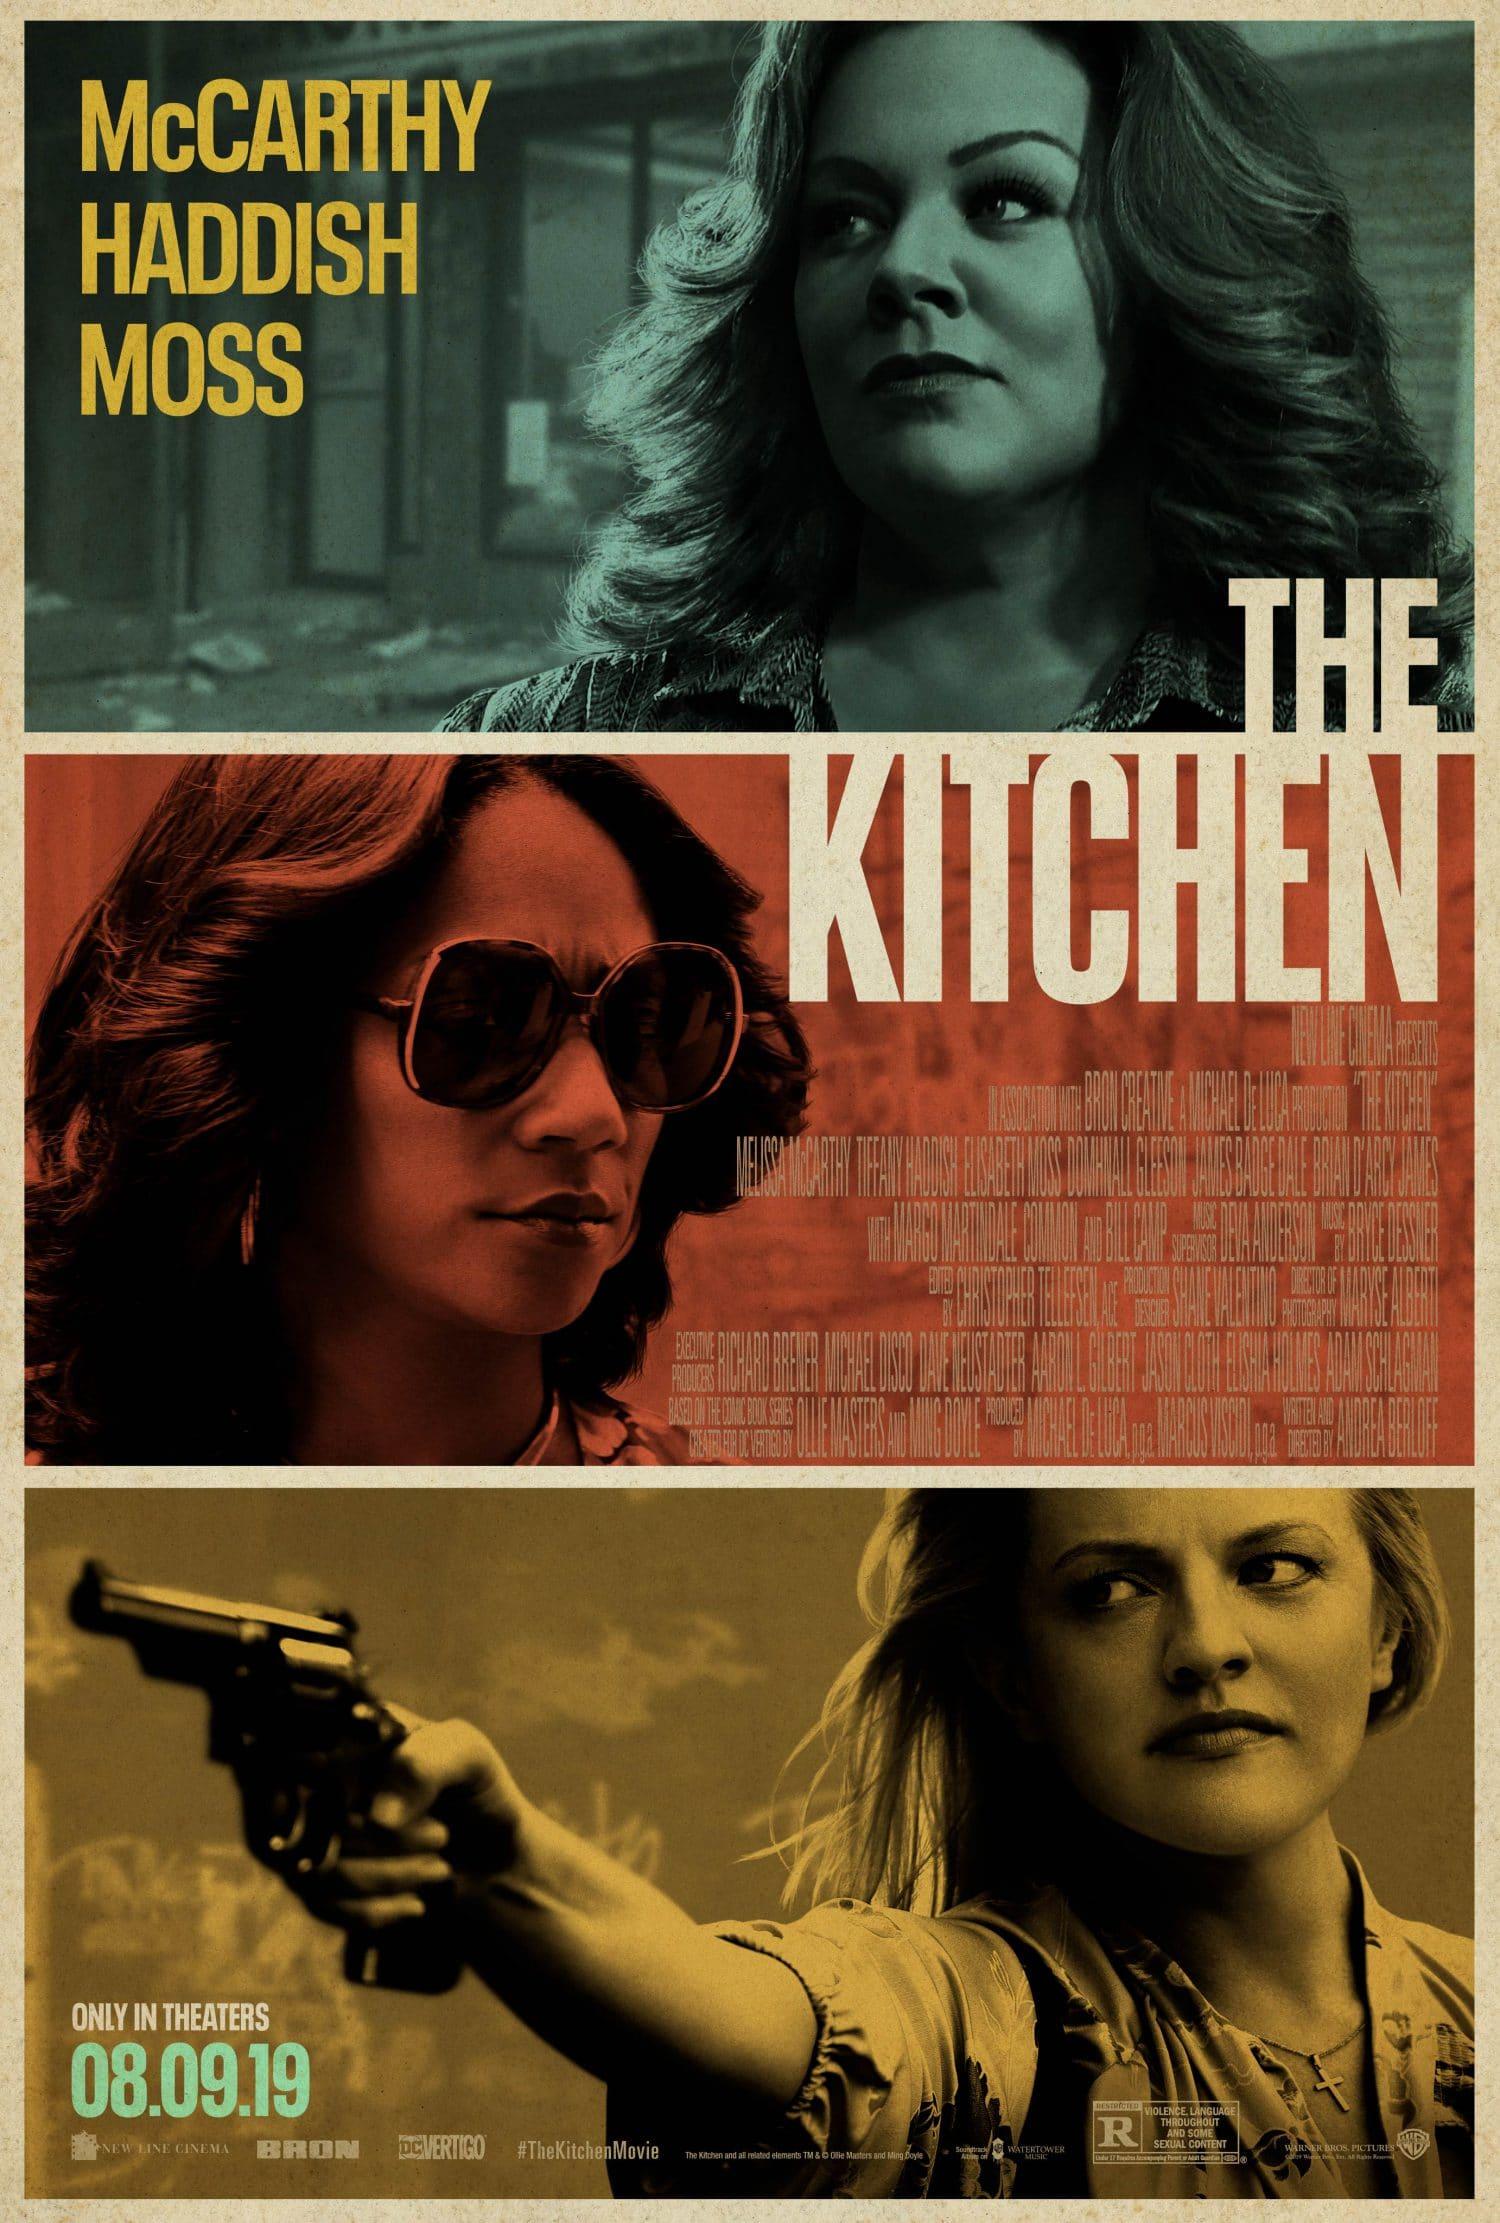 'The Kitchen' movie trailer offers a different kind of comic book adaptation.